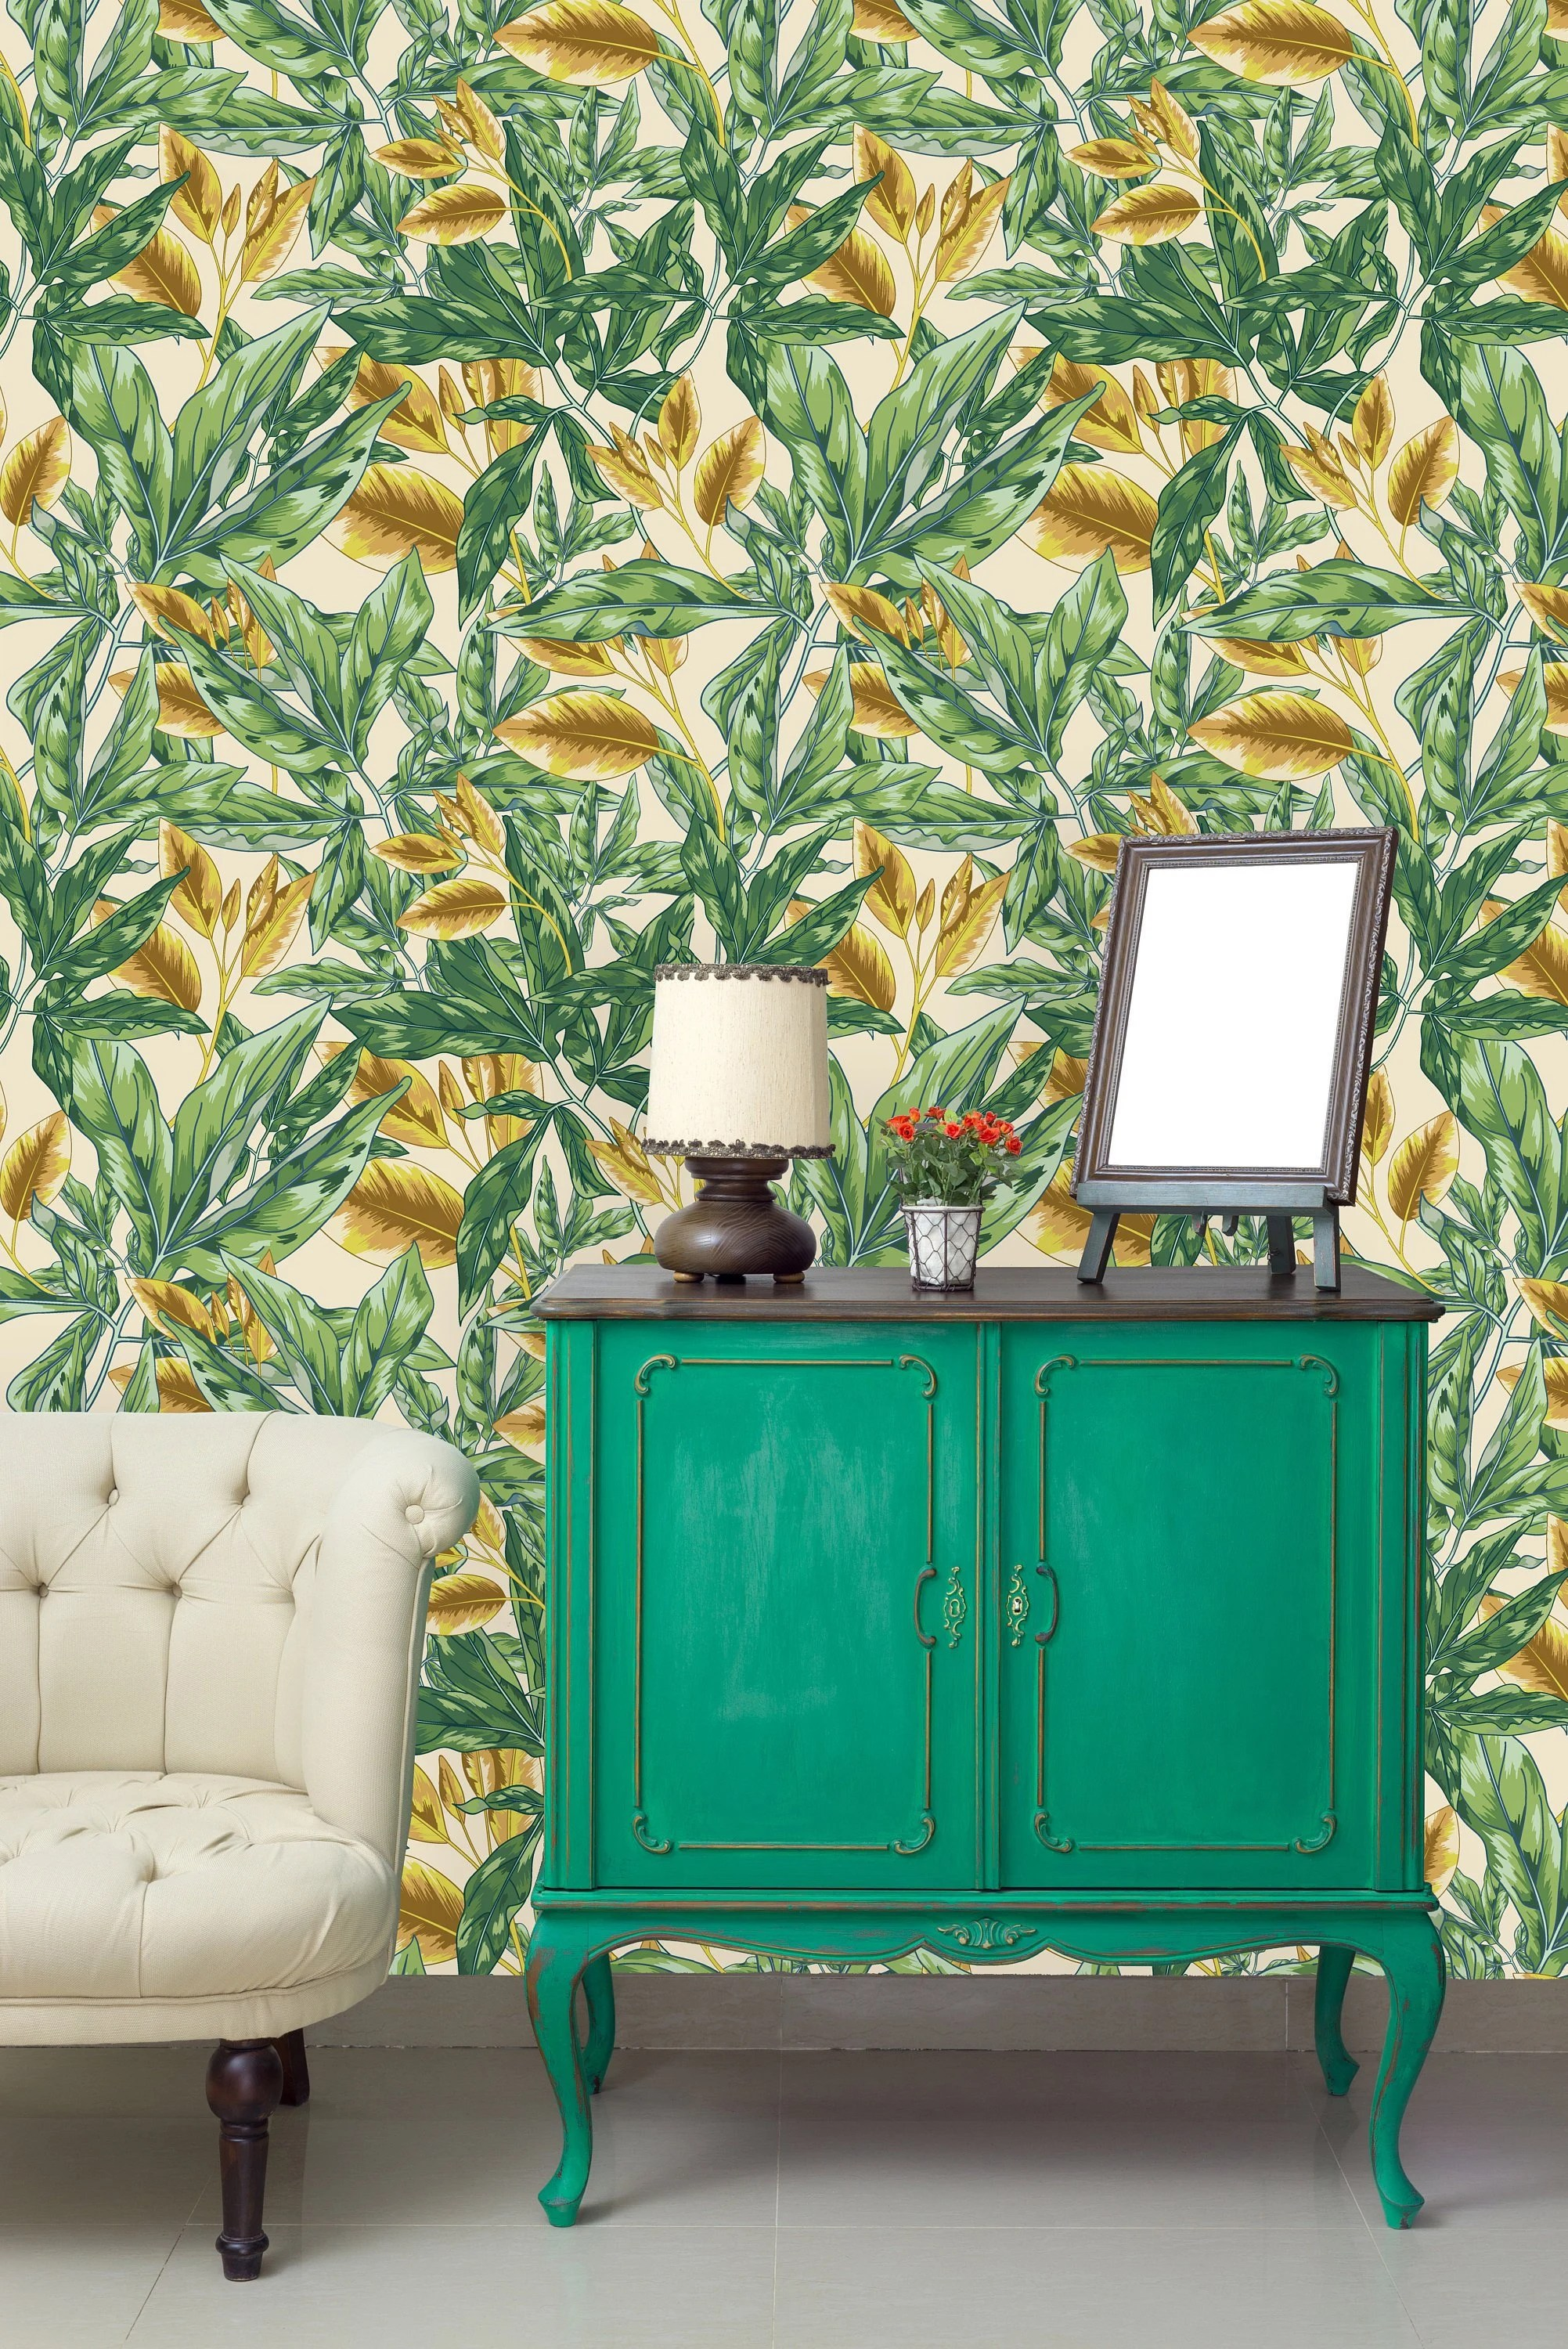 Gold And Green Leaves Removable Wallpaper Peel And Stick Etsy